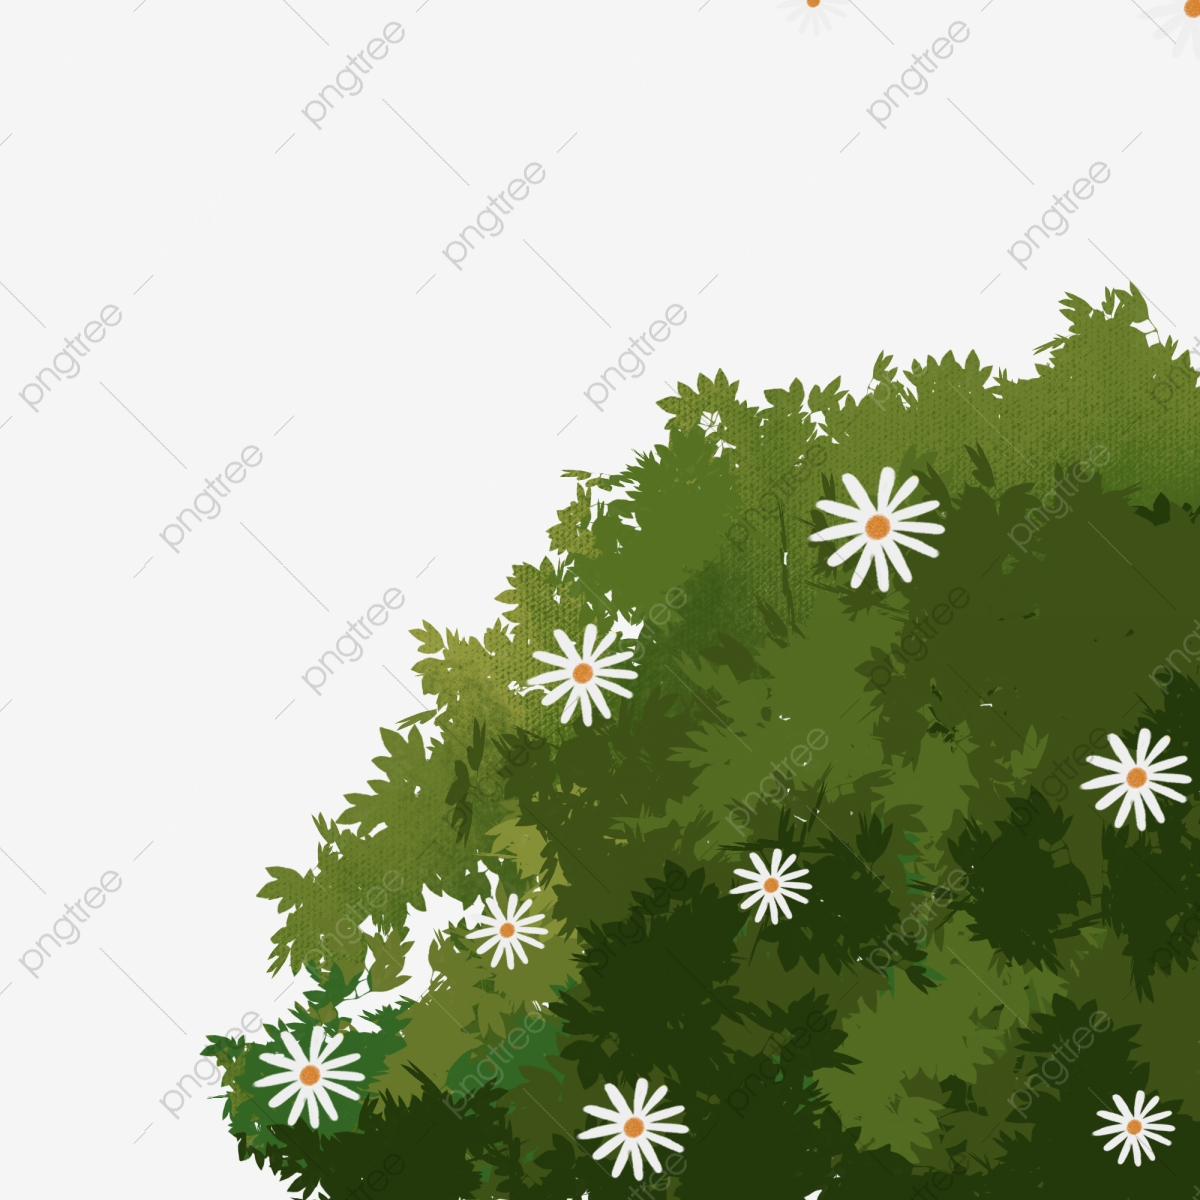 Bush Png Vector Psd And Clipart With Transparent Background For Free Download Pngtree All content is available for personal use. https pngtree com freepng cartoon spring bush png download 4566459 html